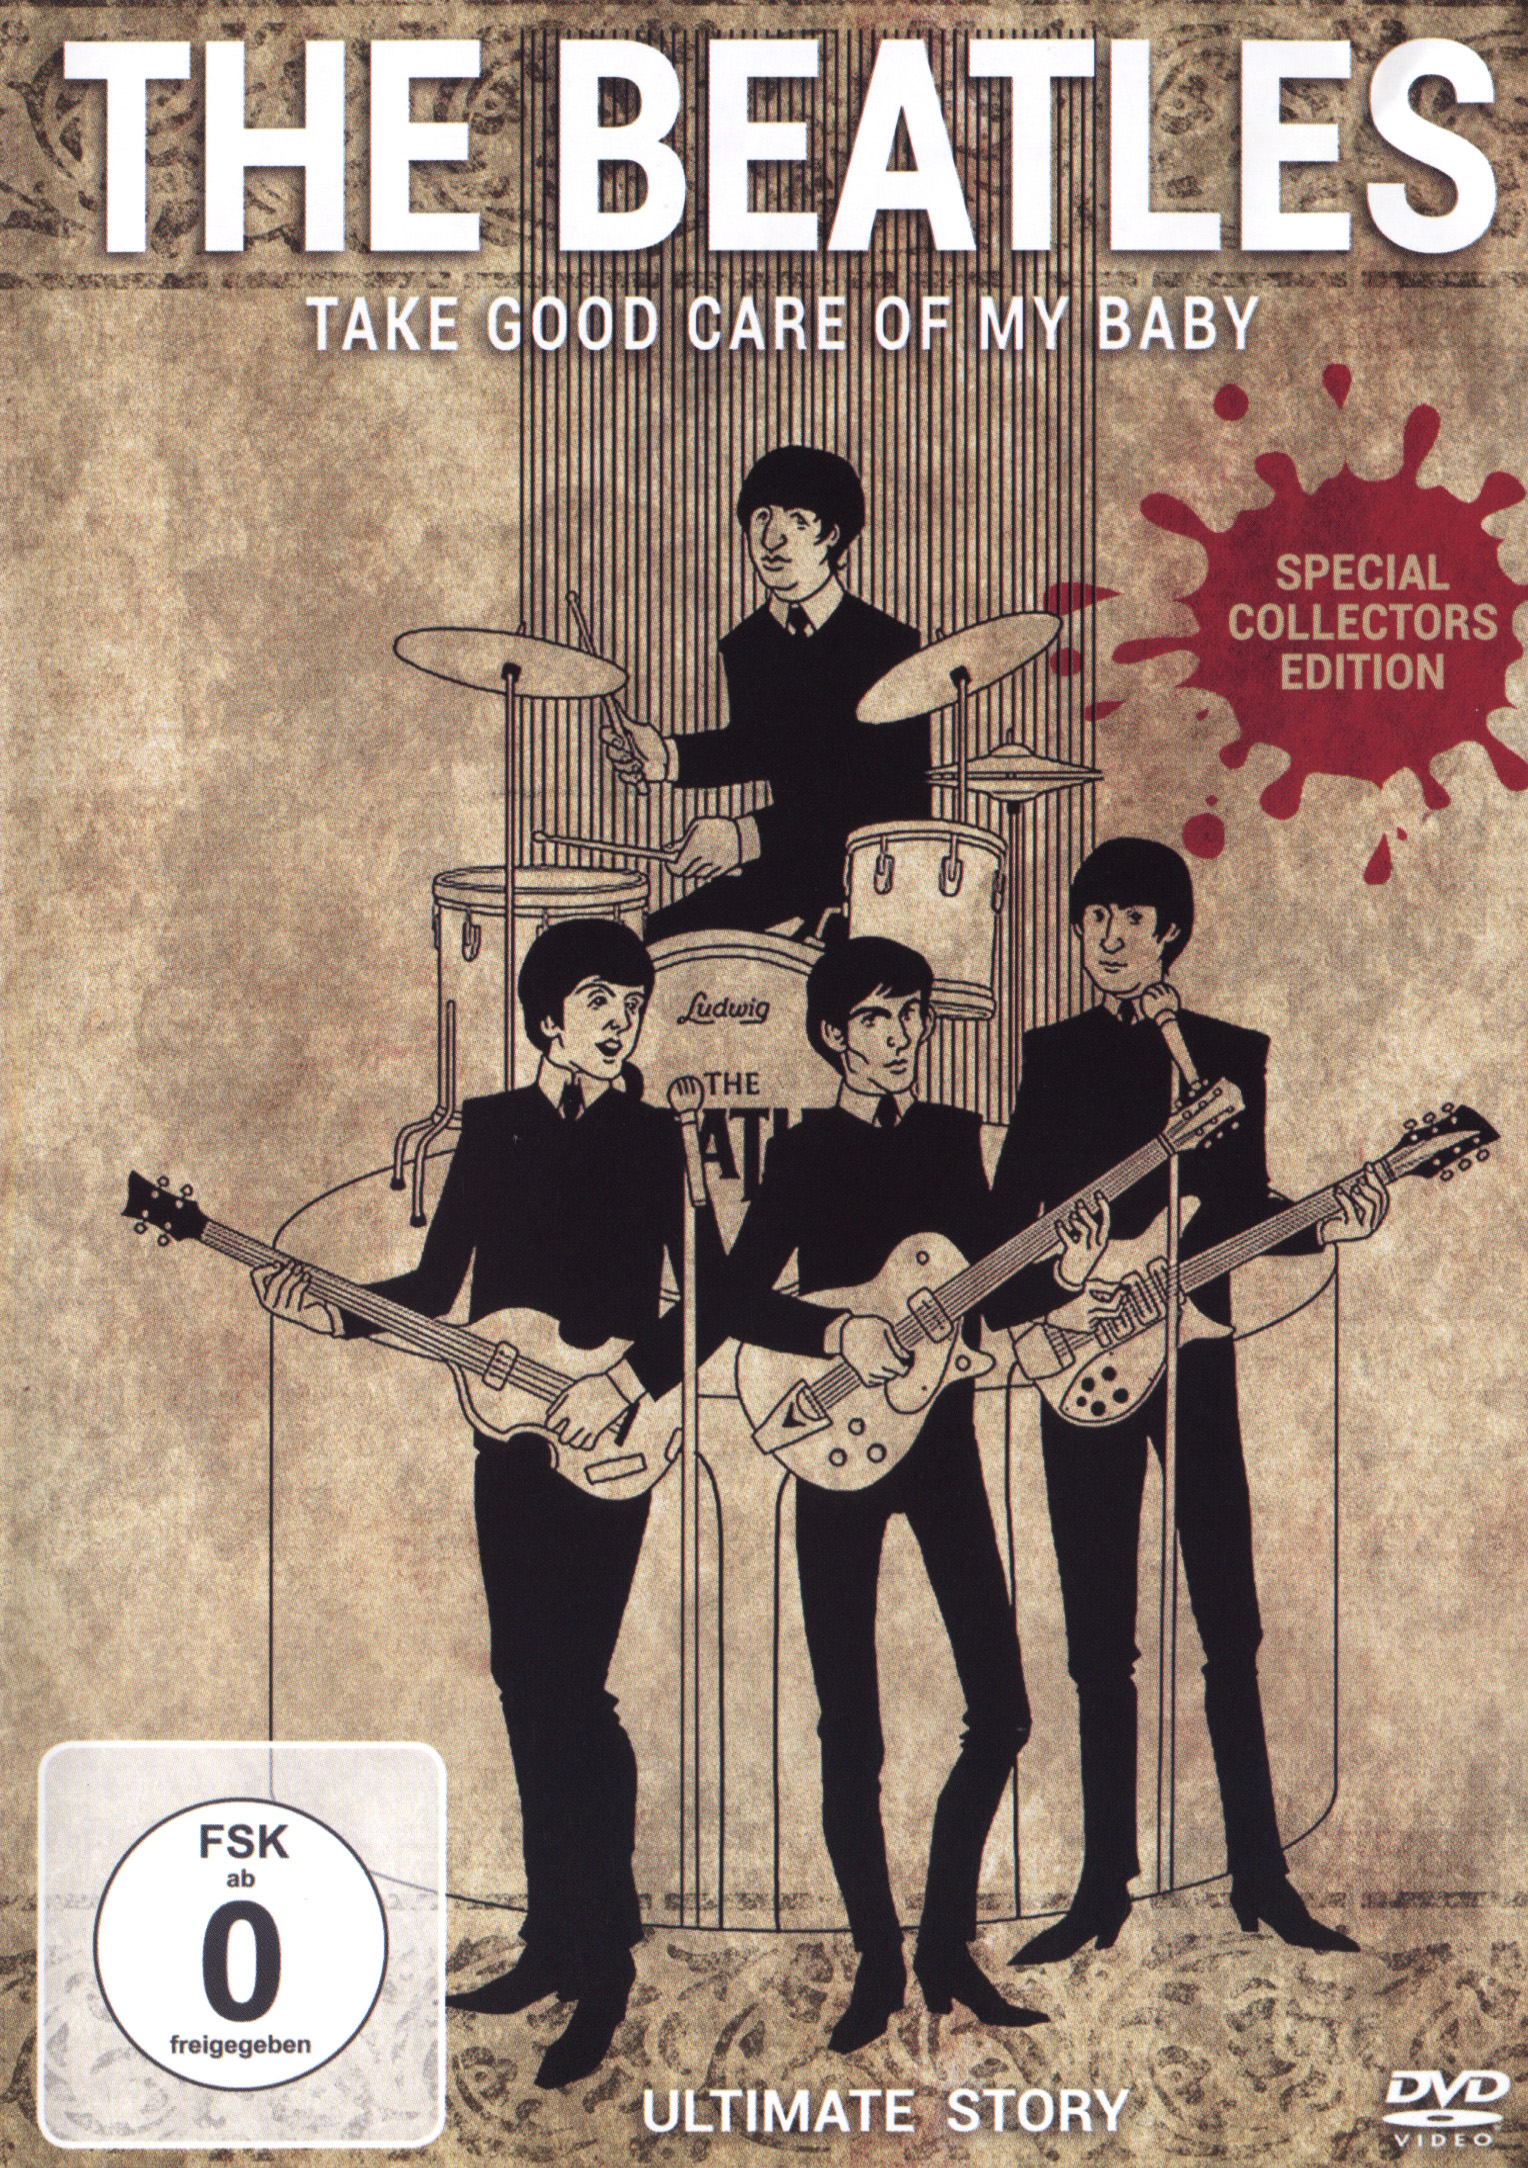 The Beatles: Take Good Care of My Baby